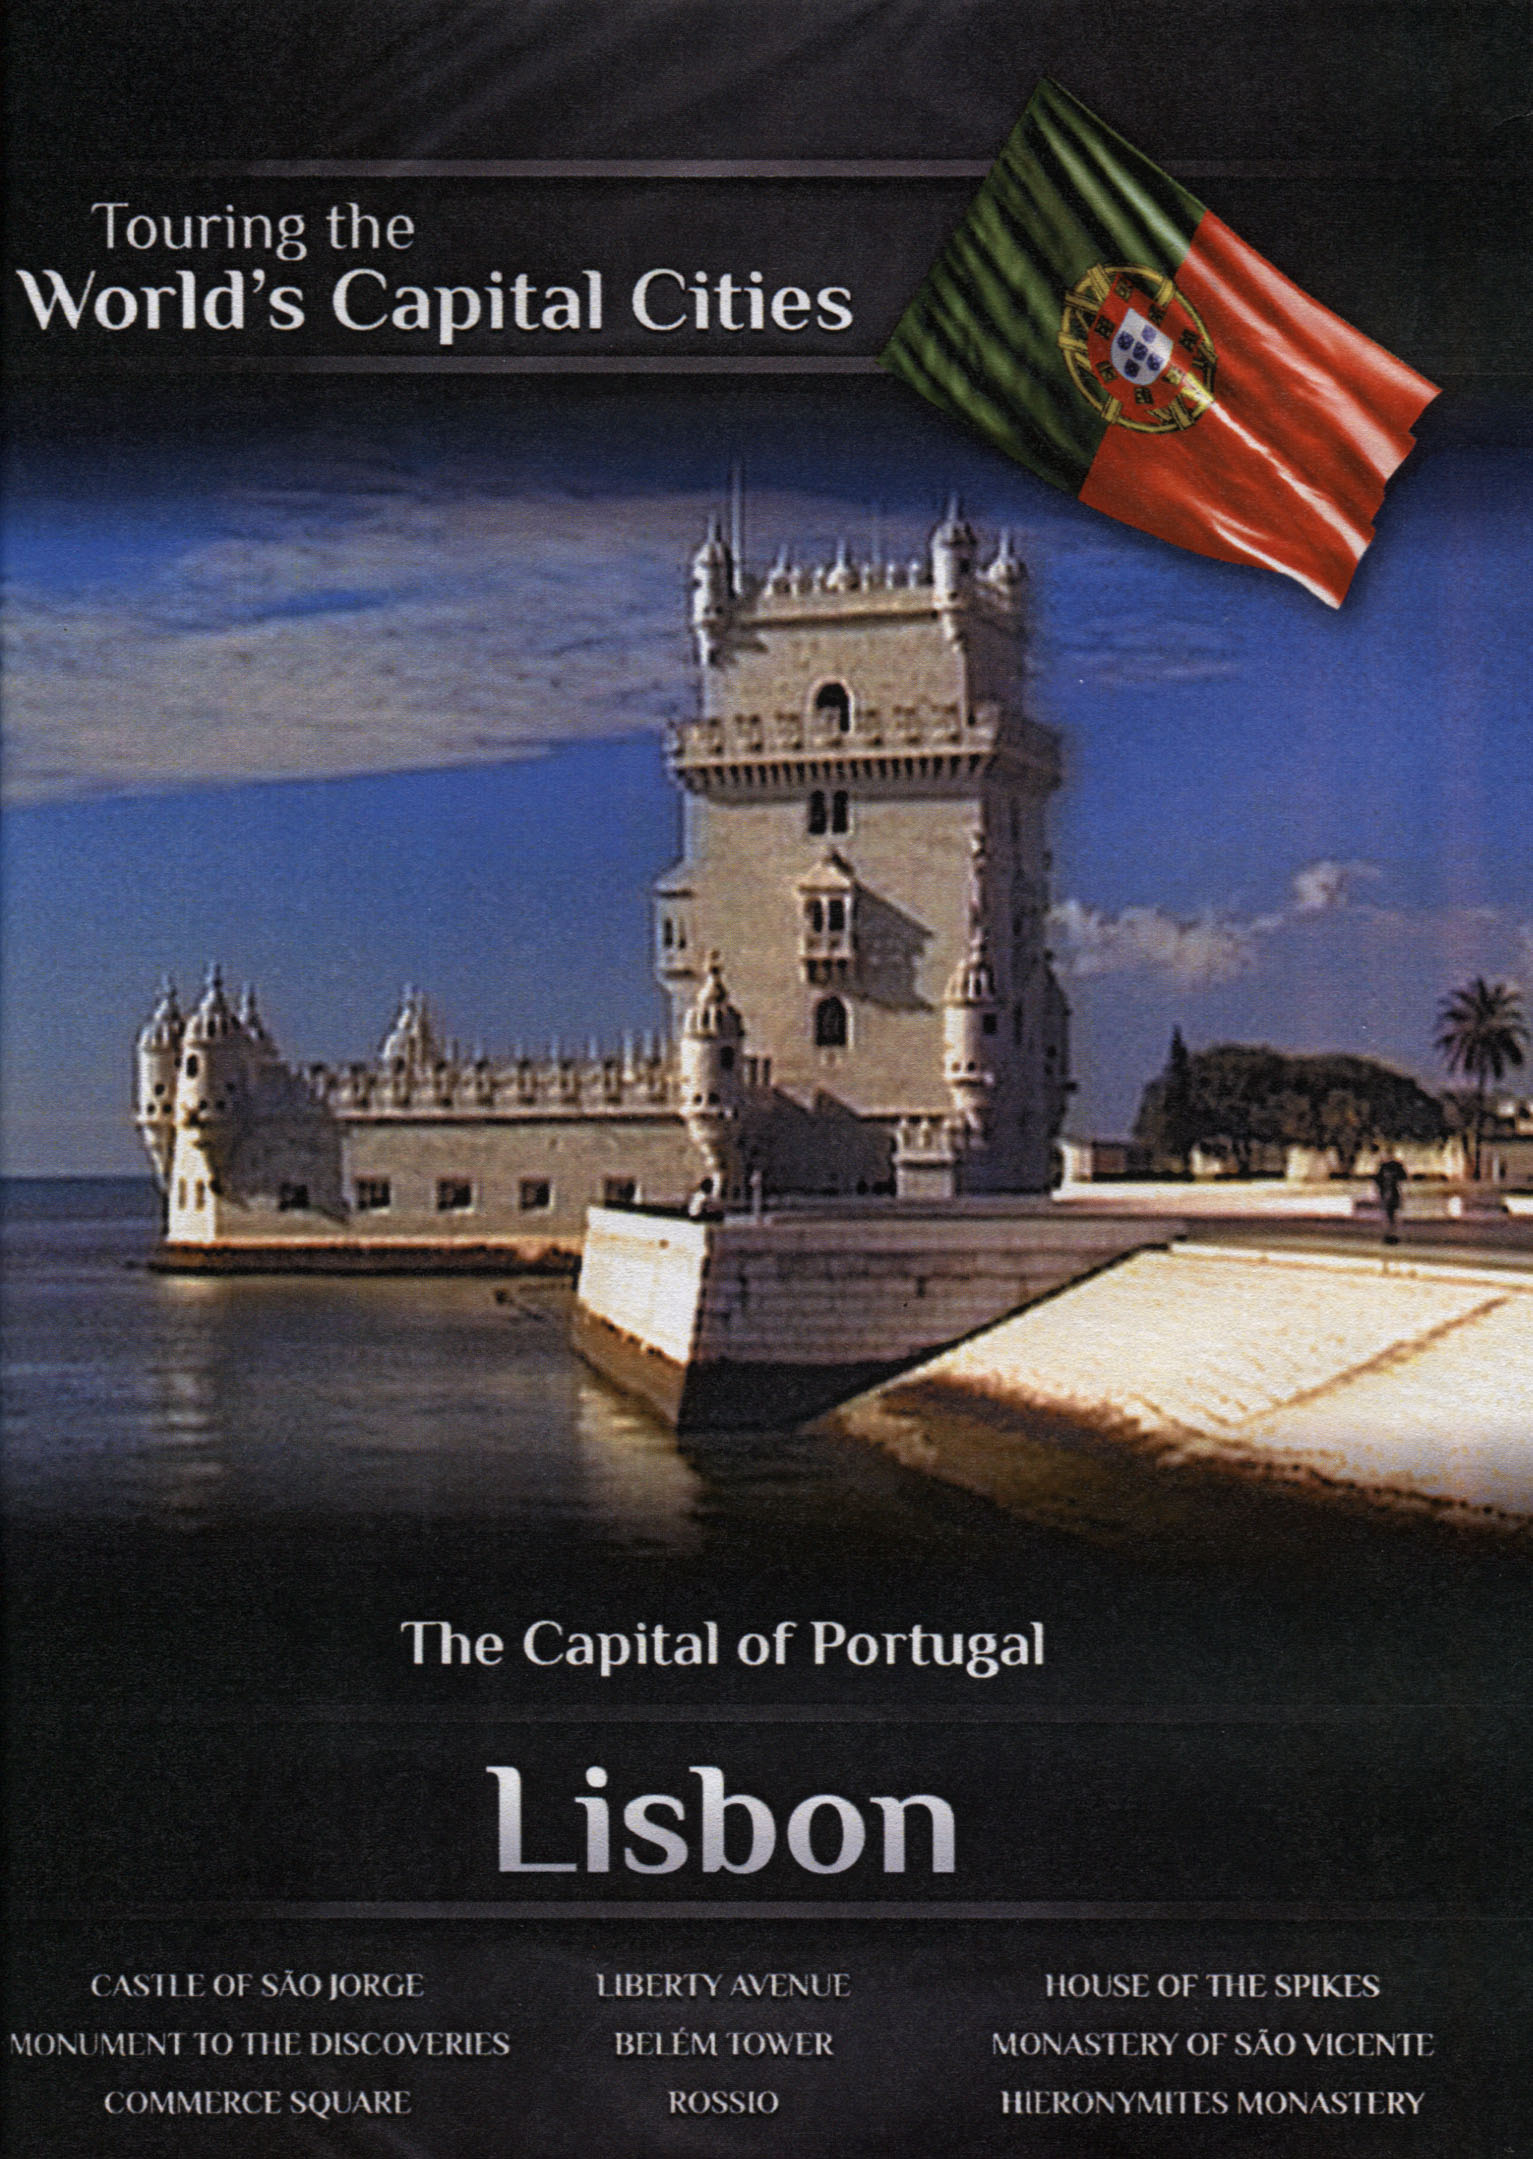 Touring the World's Capital Cities: The Capital of Portugal - Lisbon